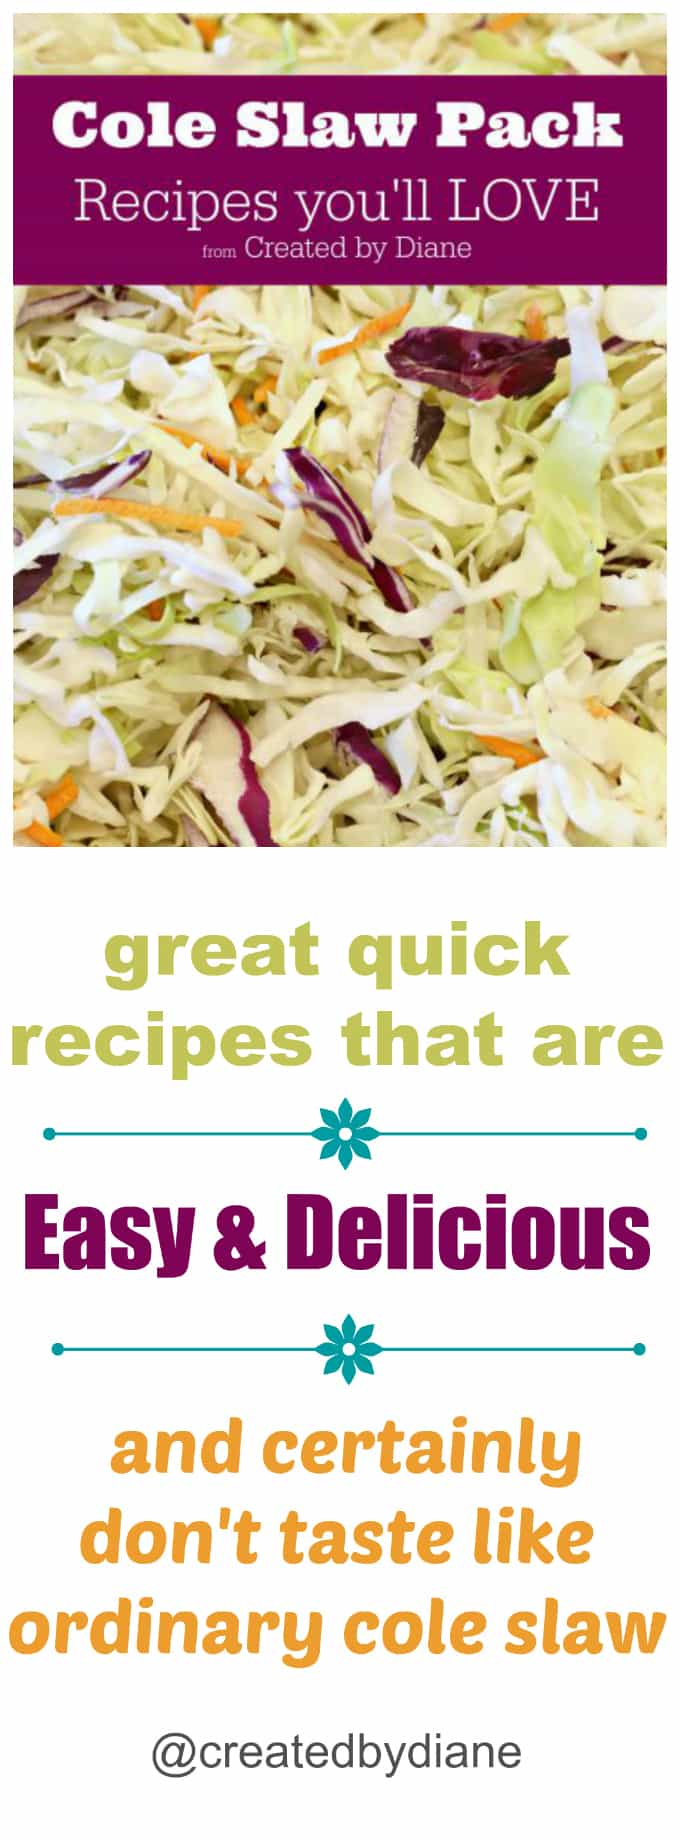 cole-slaw-recipes-that-are-not-ordinary-cole-slaw-createdbydiane